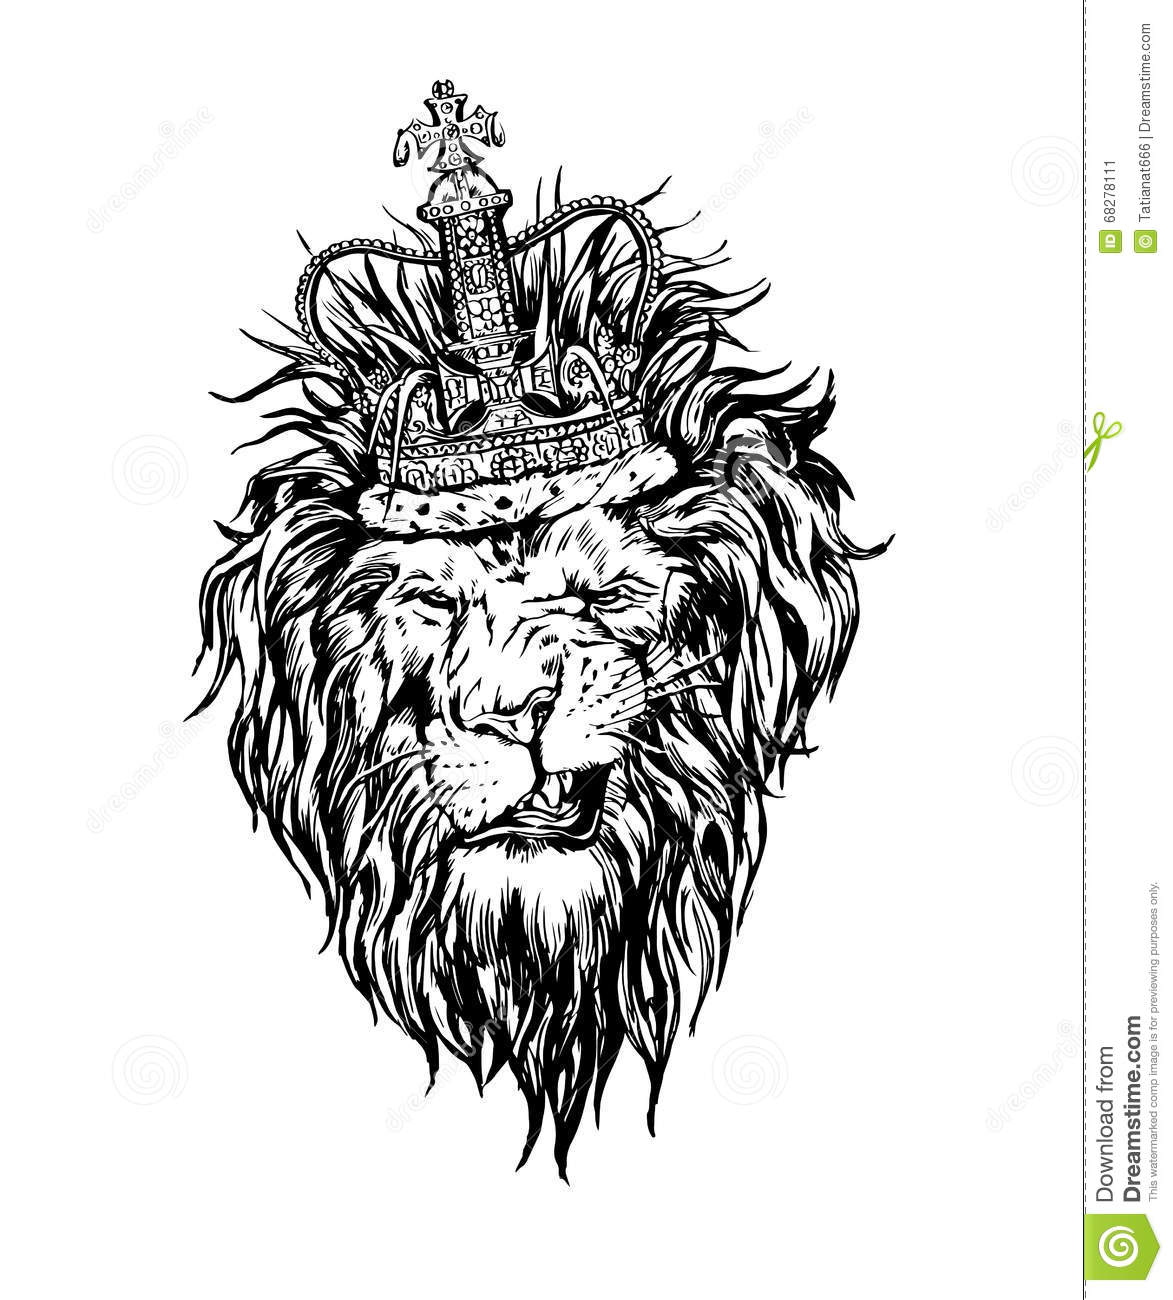 Lion With Crown Wallpaper Lion With Crown Tattoo Design: Hand Drawn Realistic Lion In Crown Character. Stock Vector